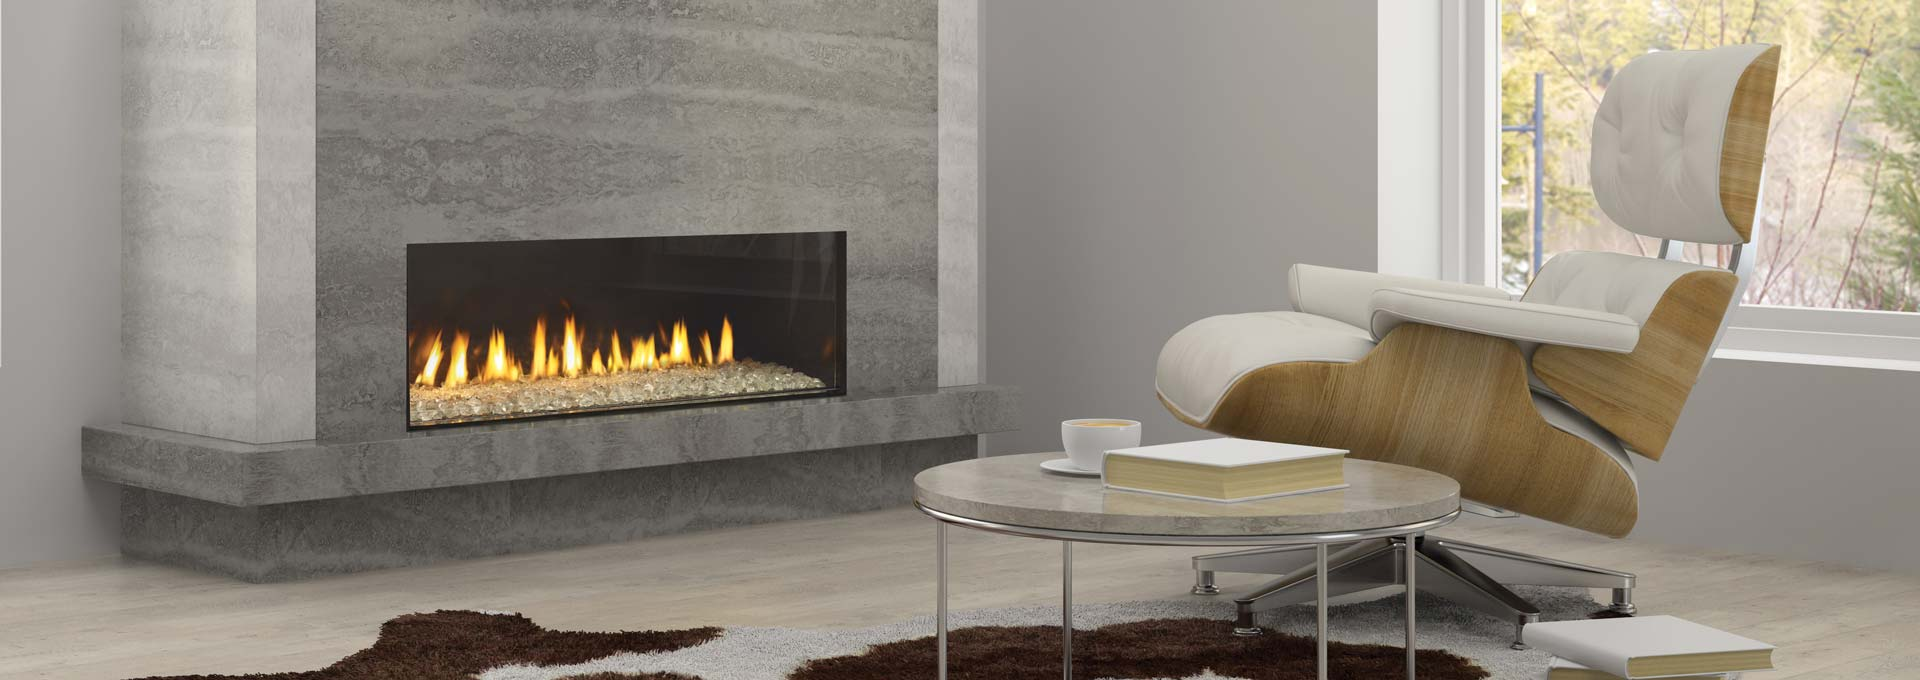 Regency City Series New York View 40 Modern Gas Fireplace  Toronto Best Price